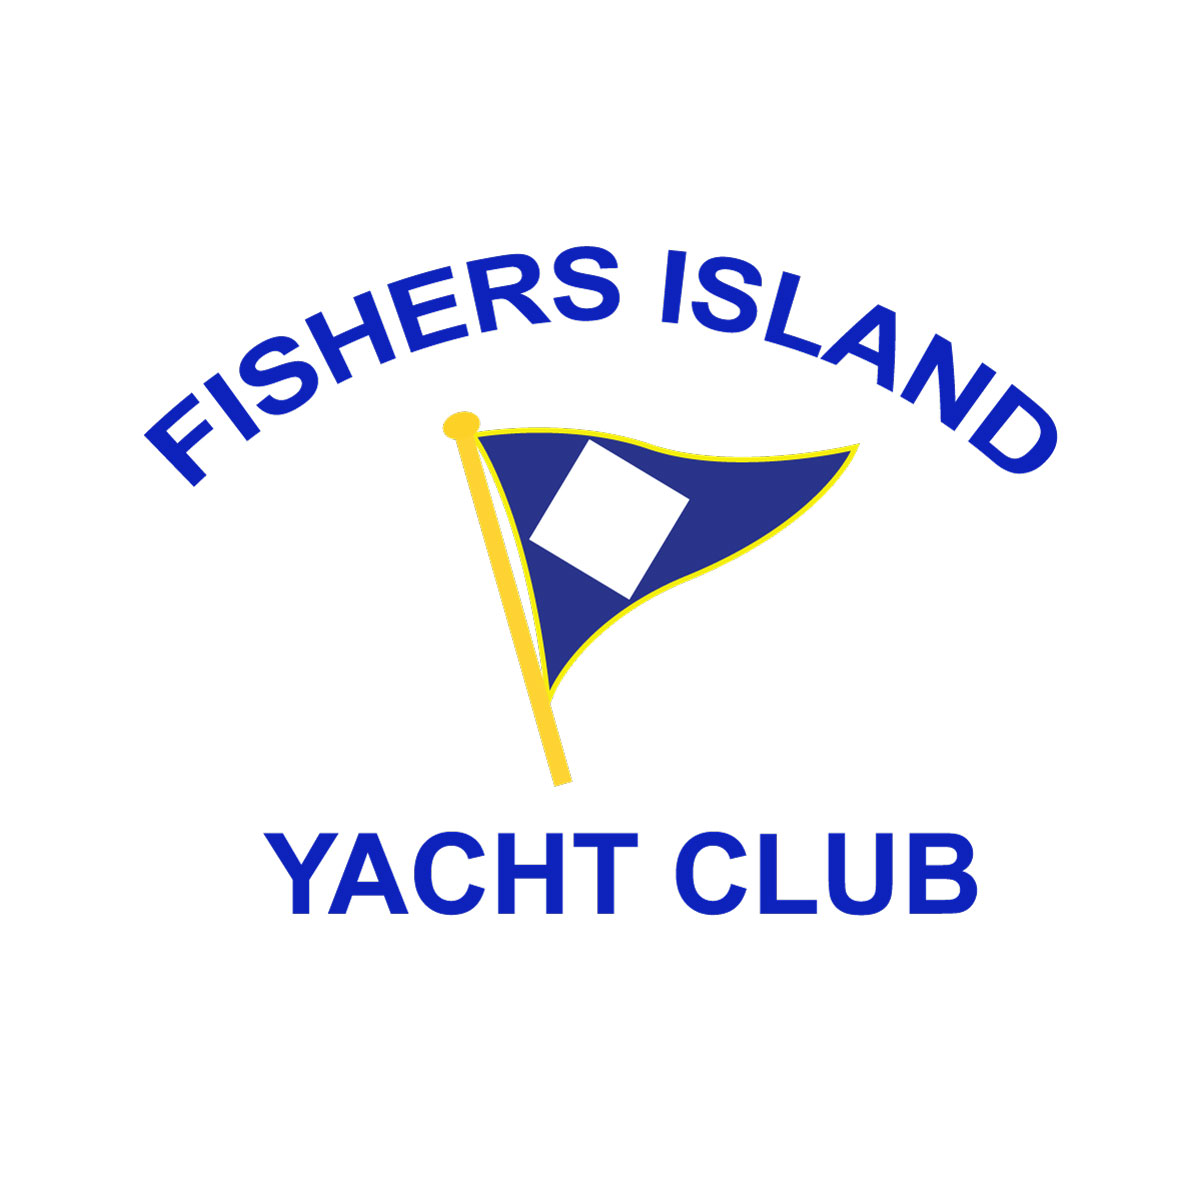 Fishers Island Yacht Club - Logo Added to Other Products